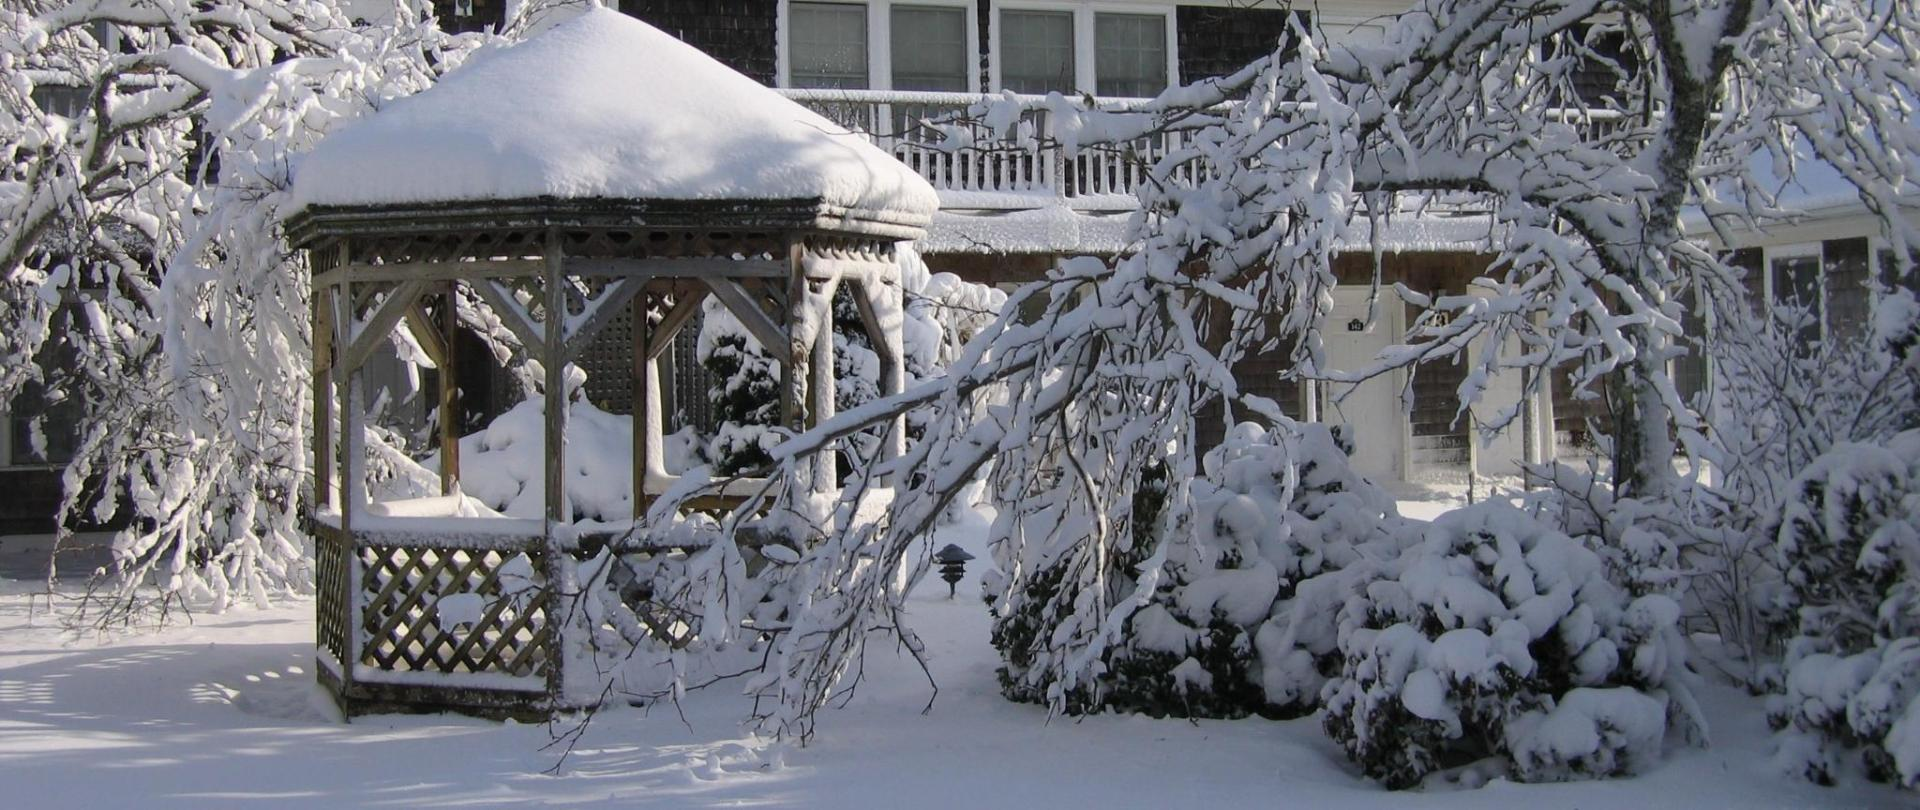 winter-gazebo.JPG